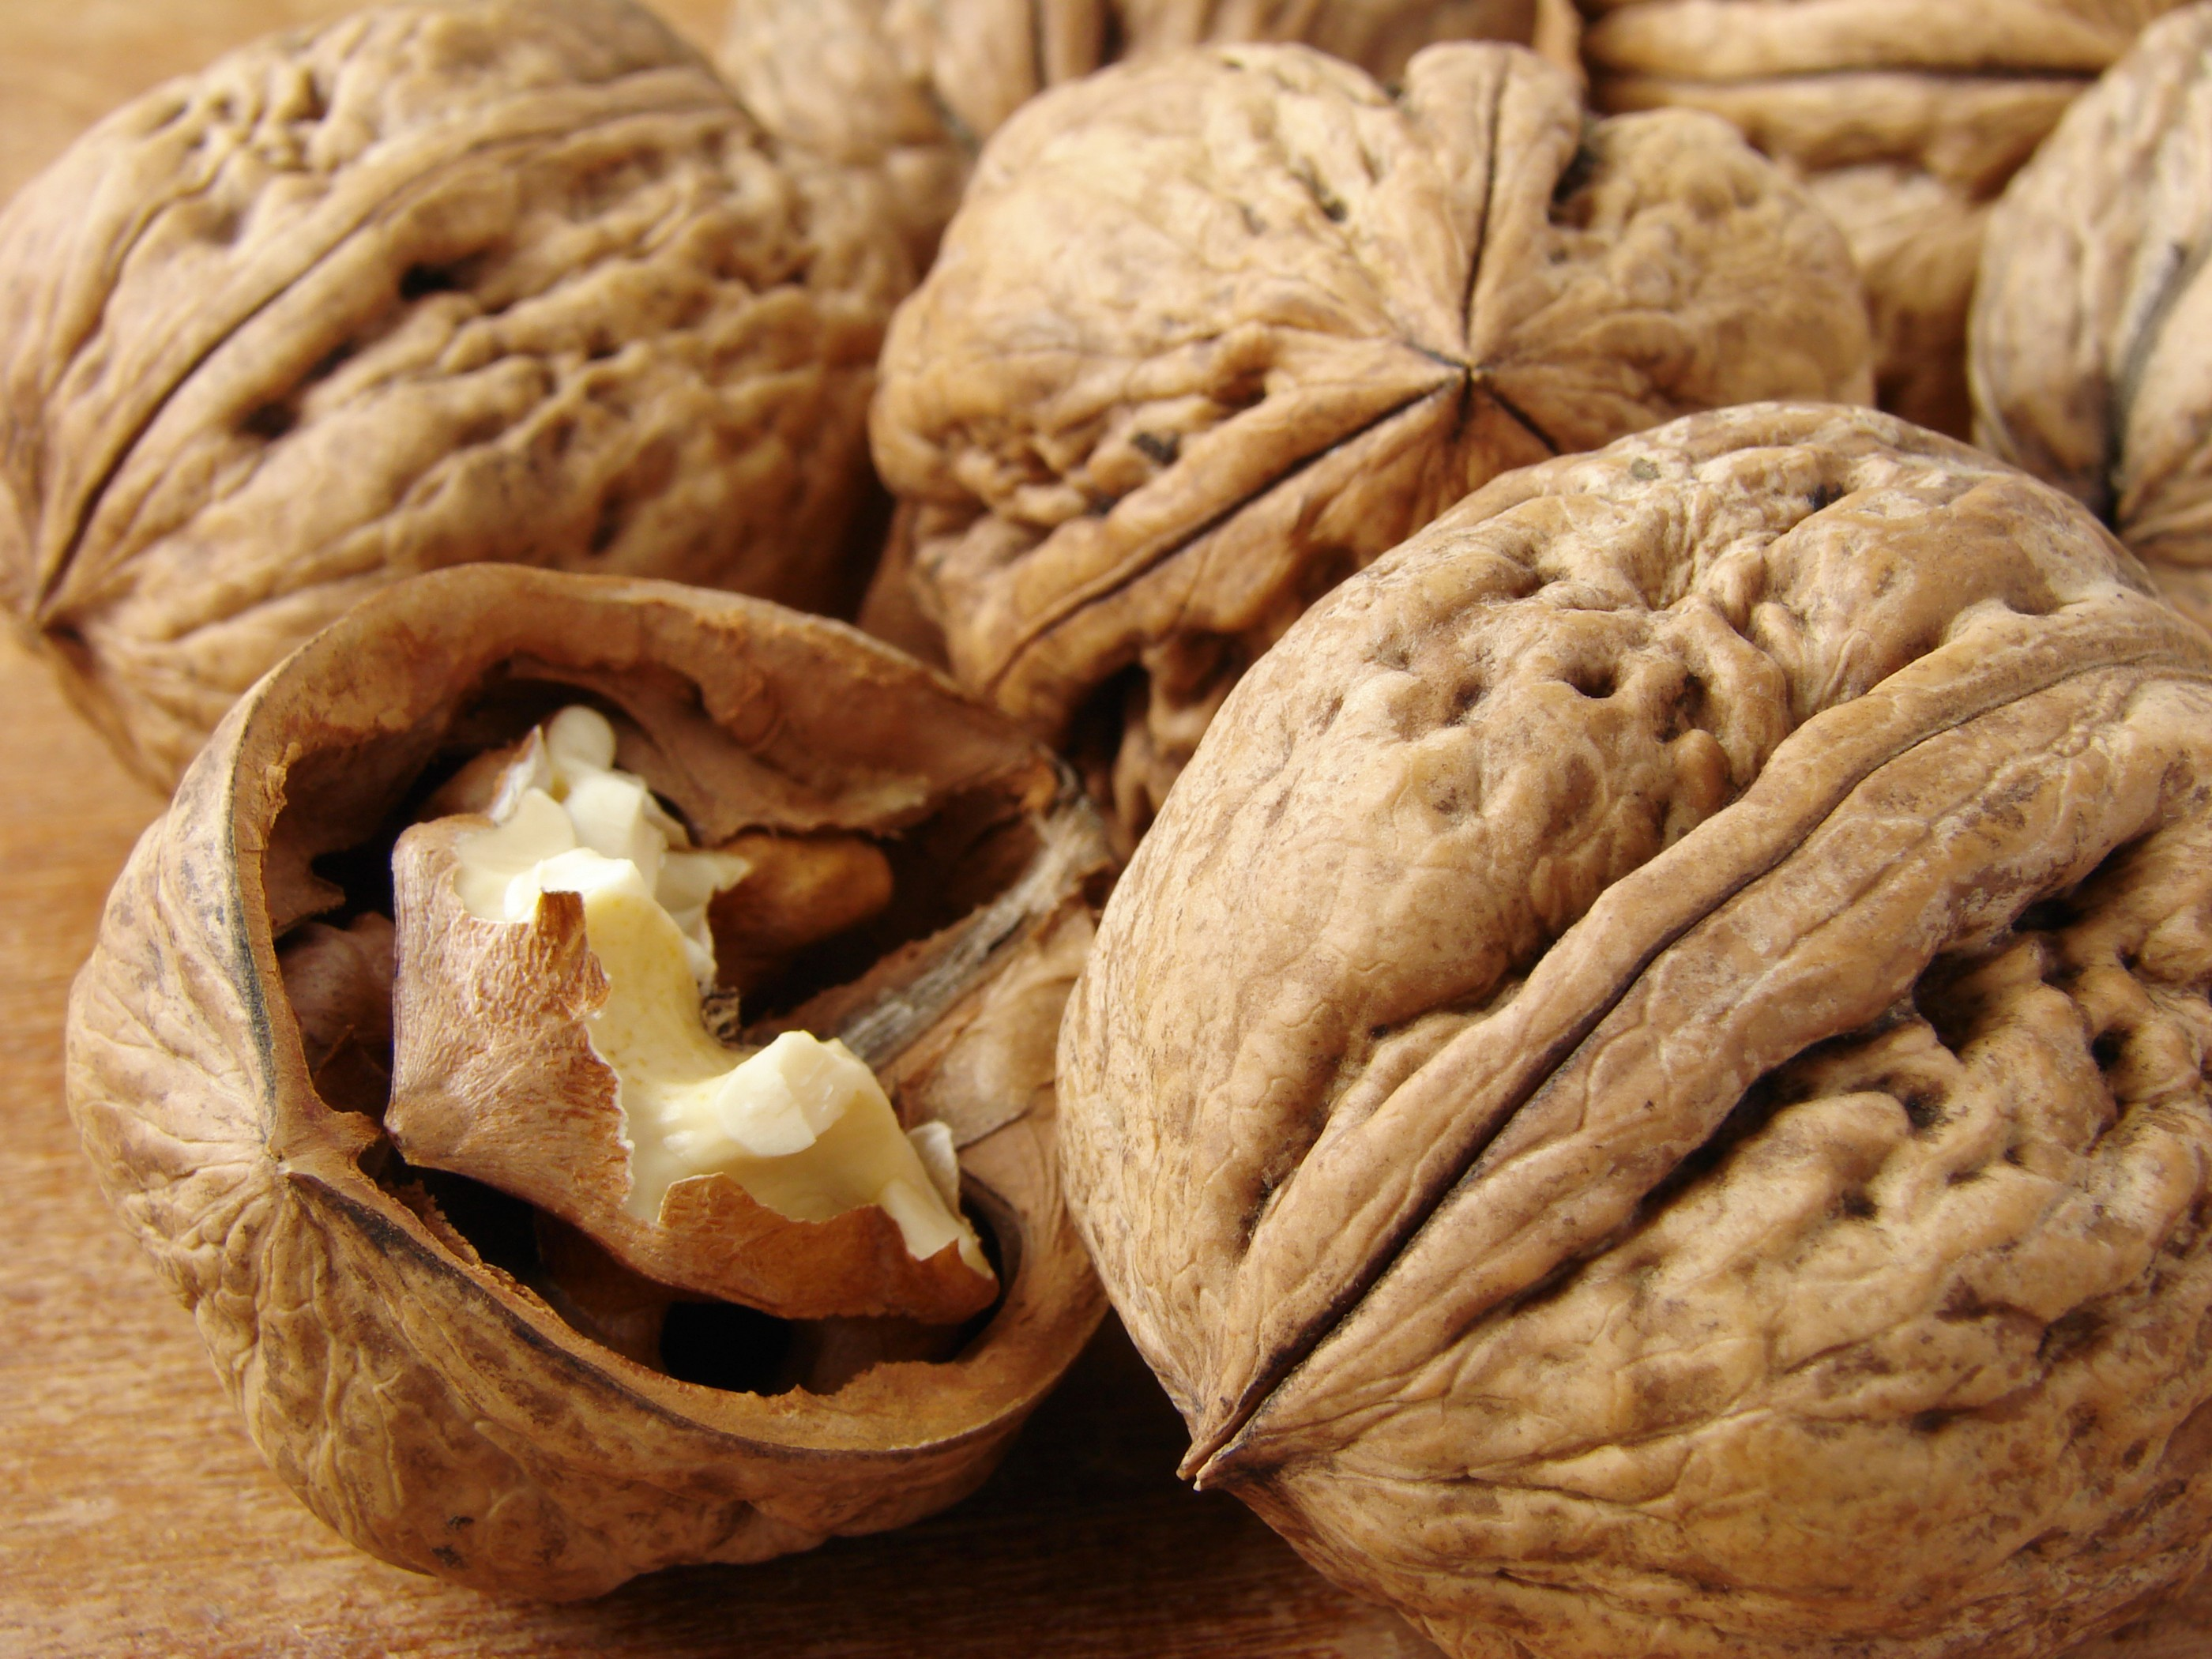 Walnuts in their shell